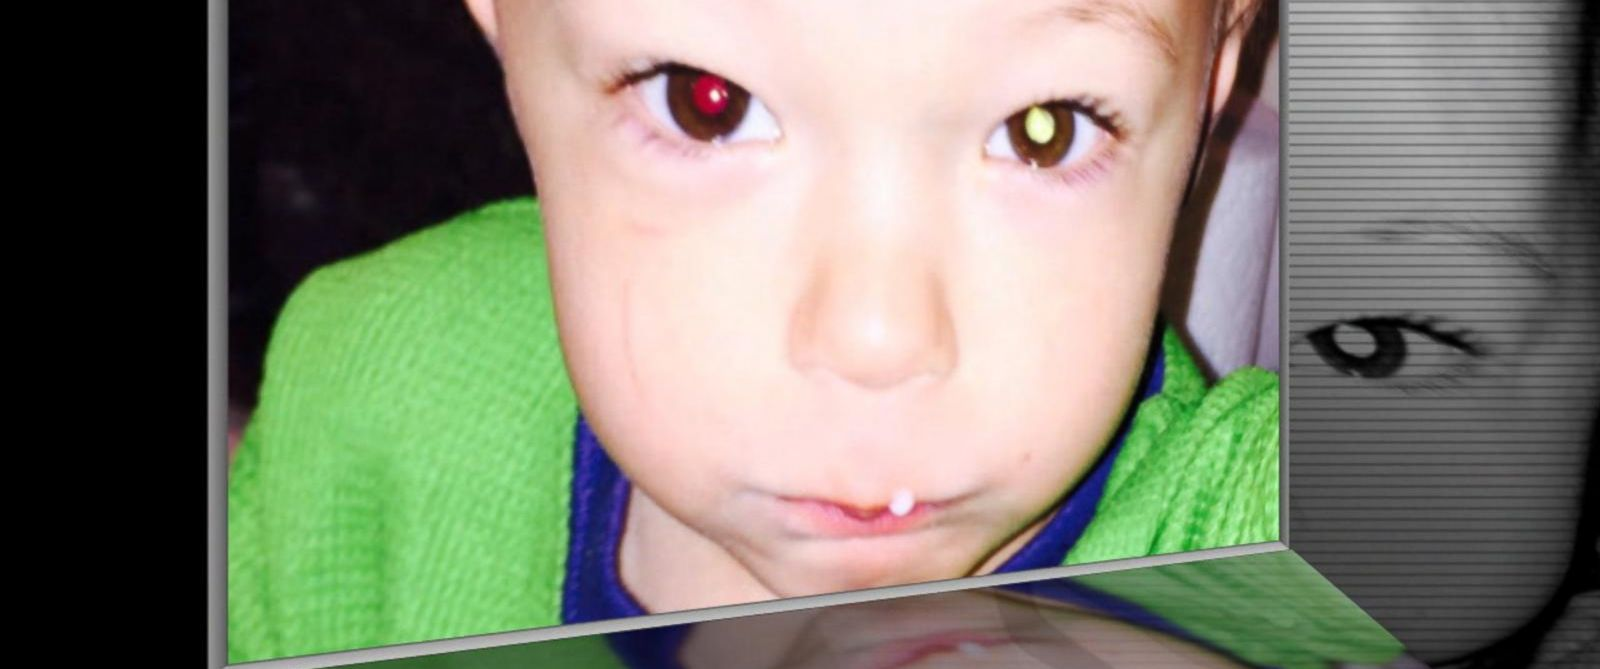 PHOTO: Avery Fitzgerald, 2, of Illinois is pictured in a photo taken by his mother before he was diagnosed with cancerous tumors in his eye.